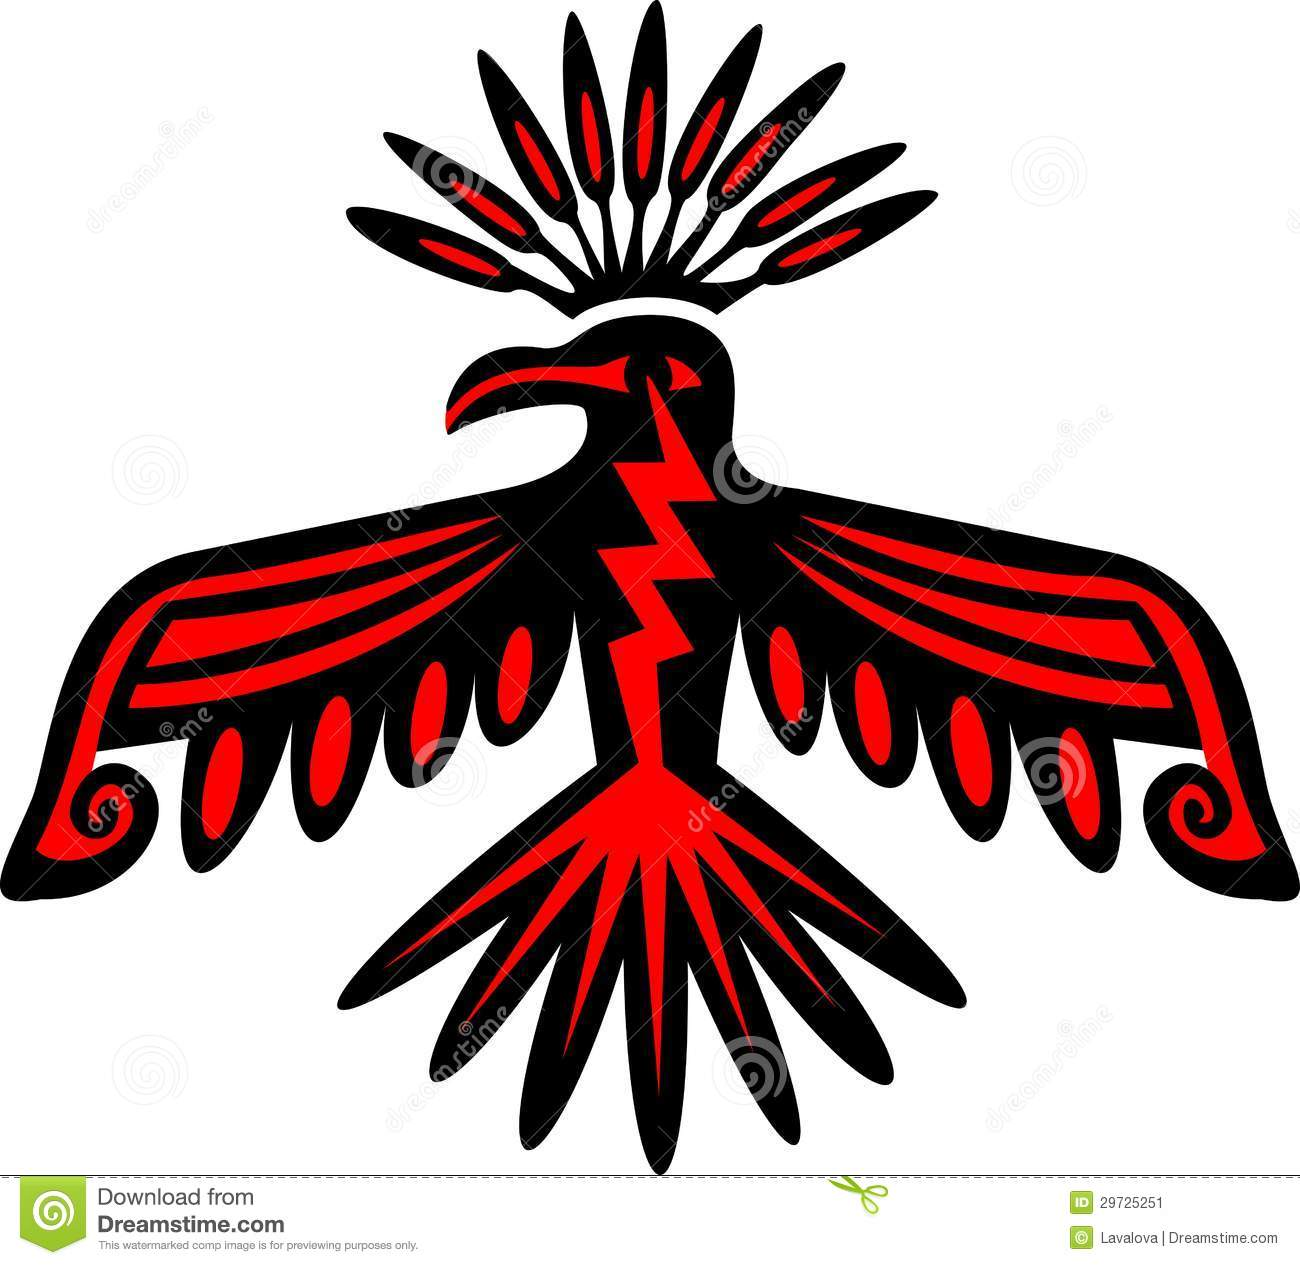 Native American clipart bird Com native com of Results